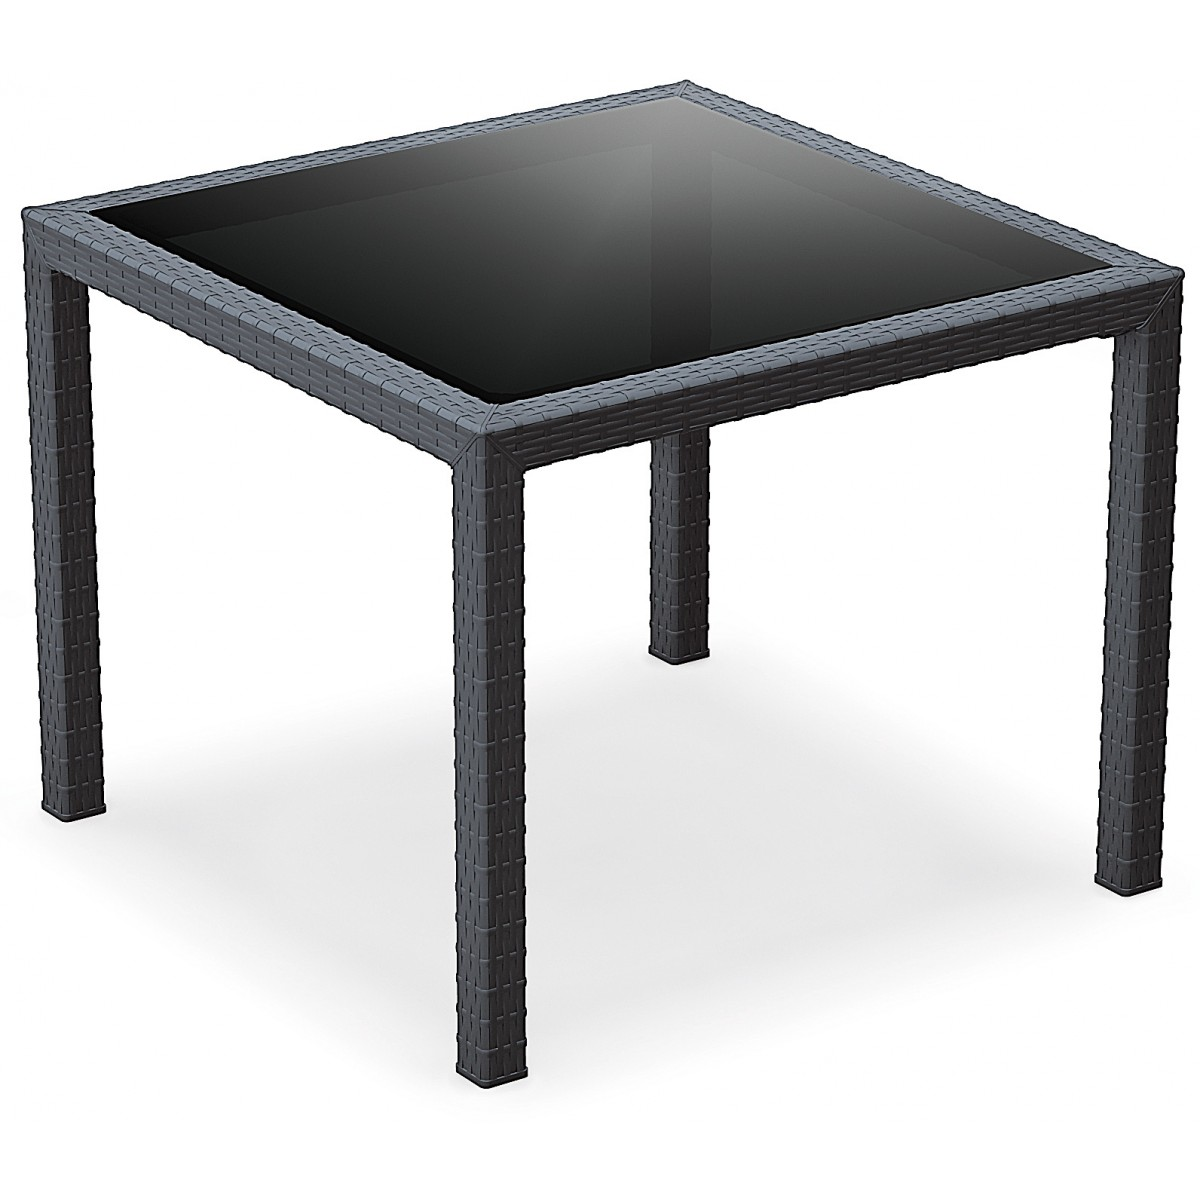 Table carree verre - Table carree en verre ...